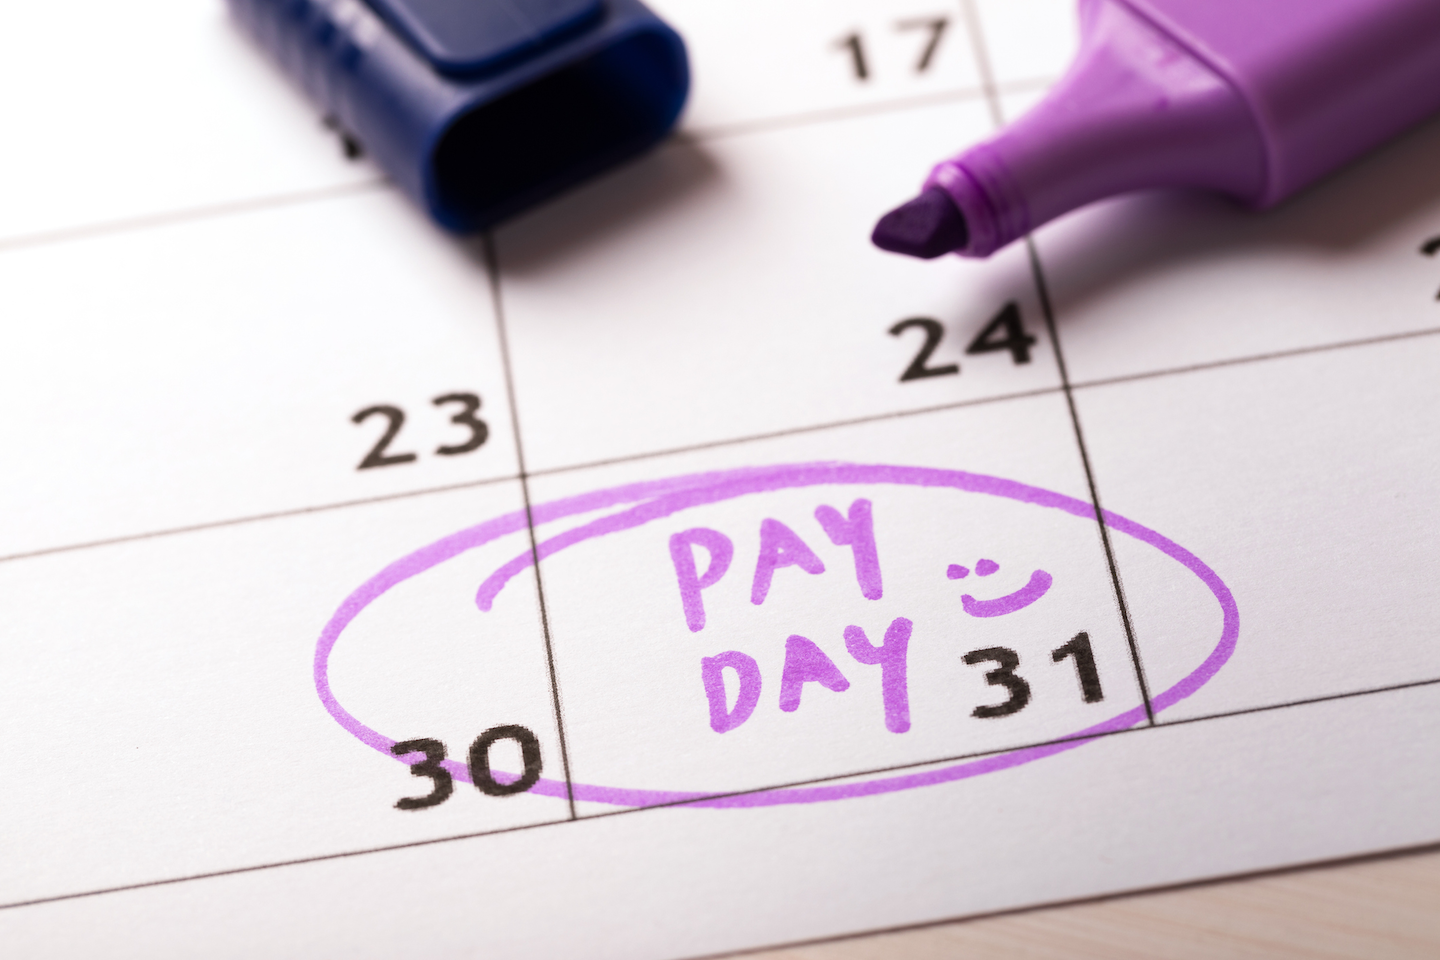 Fleets with per diem programs can shelter $66 of a driver's income from payroll taxes each day that a driver spends away from home.